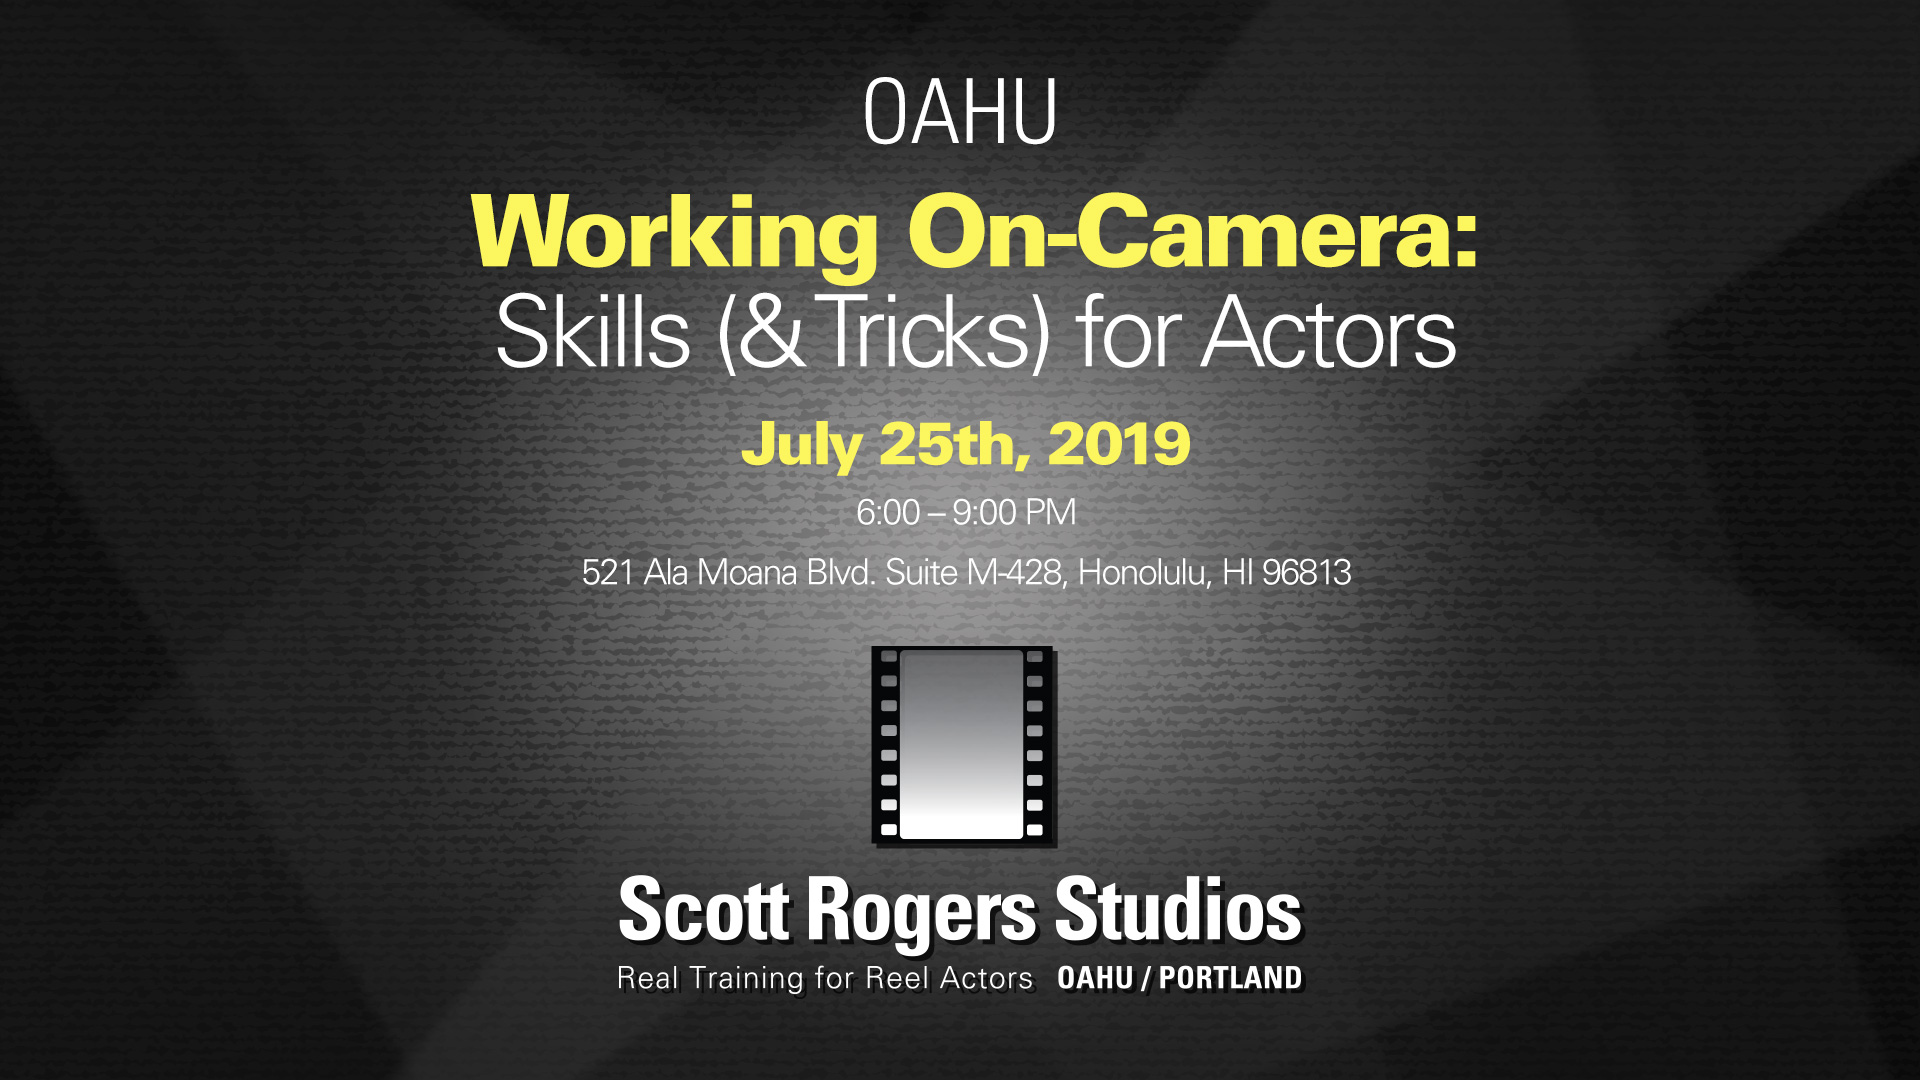 Working On-Camera: Skills (& Tricks) for Actors